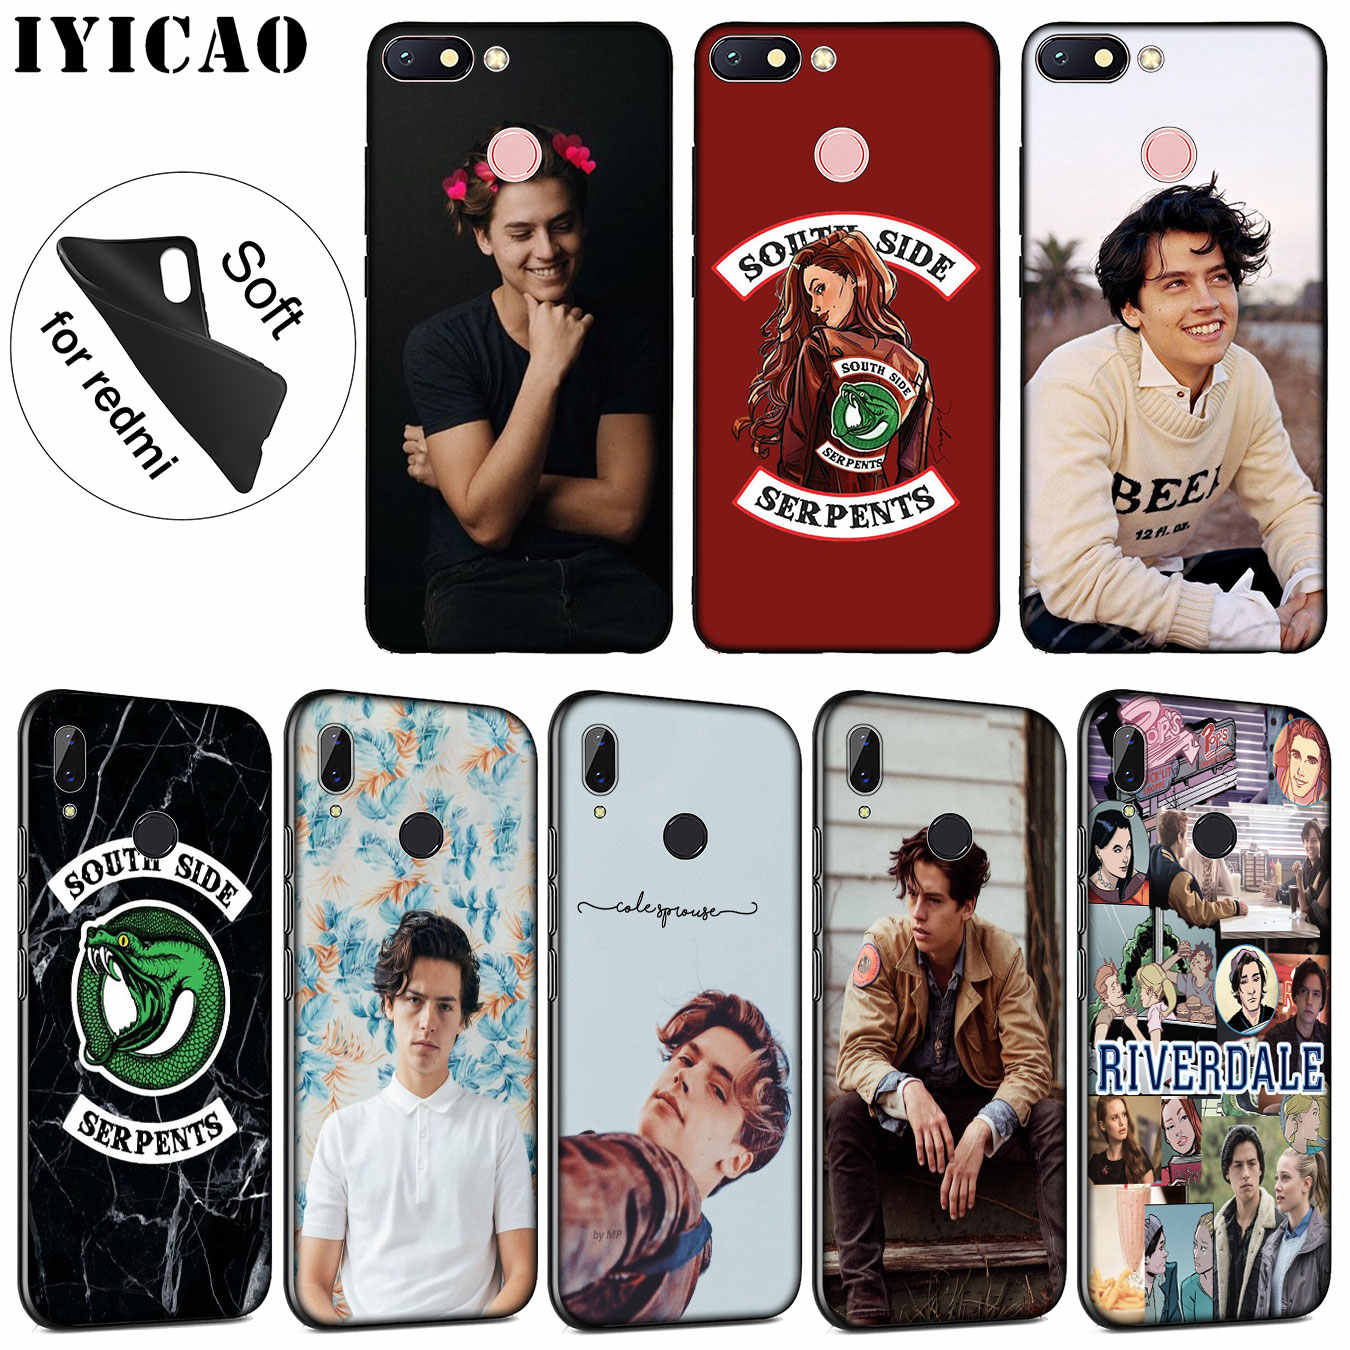 IYICAO Riverdale Jughead Jones Soft Silicone Phone Case for Xiaomi Redmi K20 7A 6A 5A S2 4X 4A GO Note 7 5 Plus 6 Pro TPU Cover